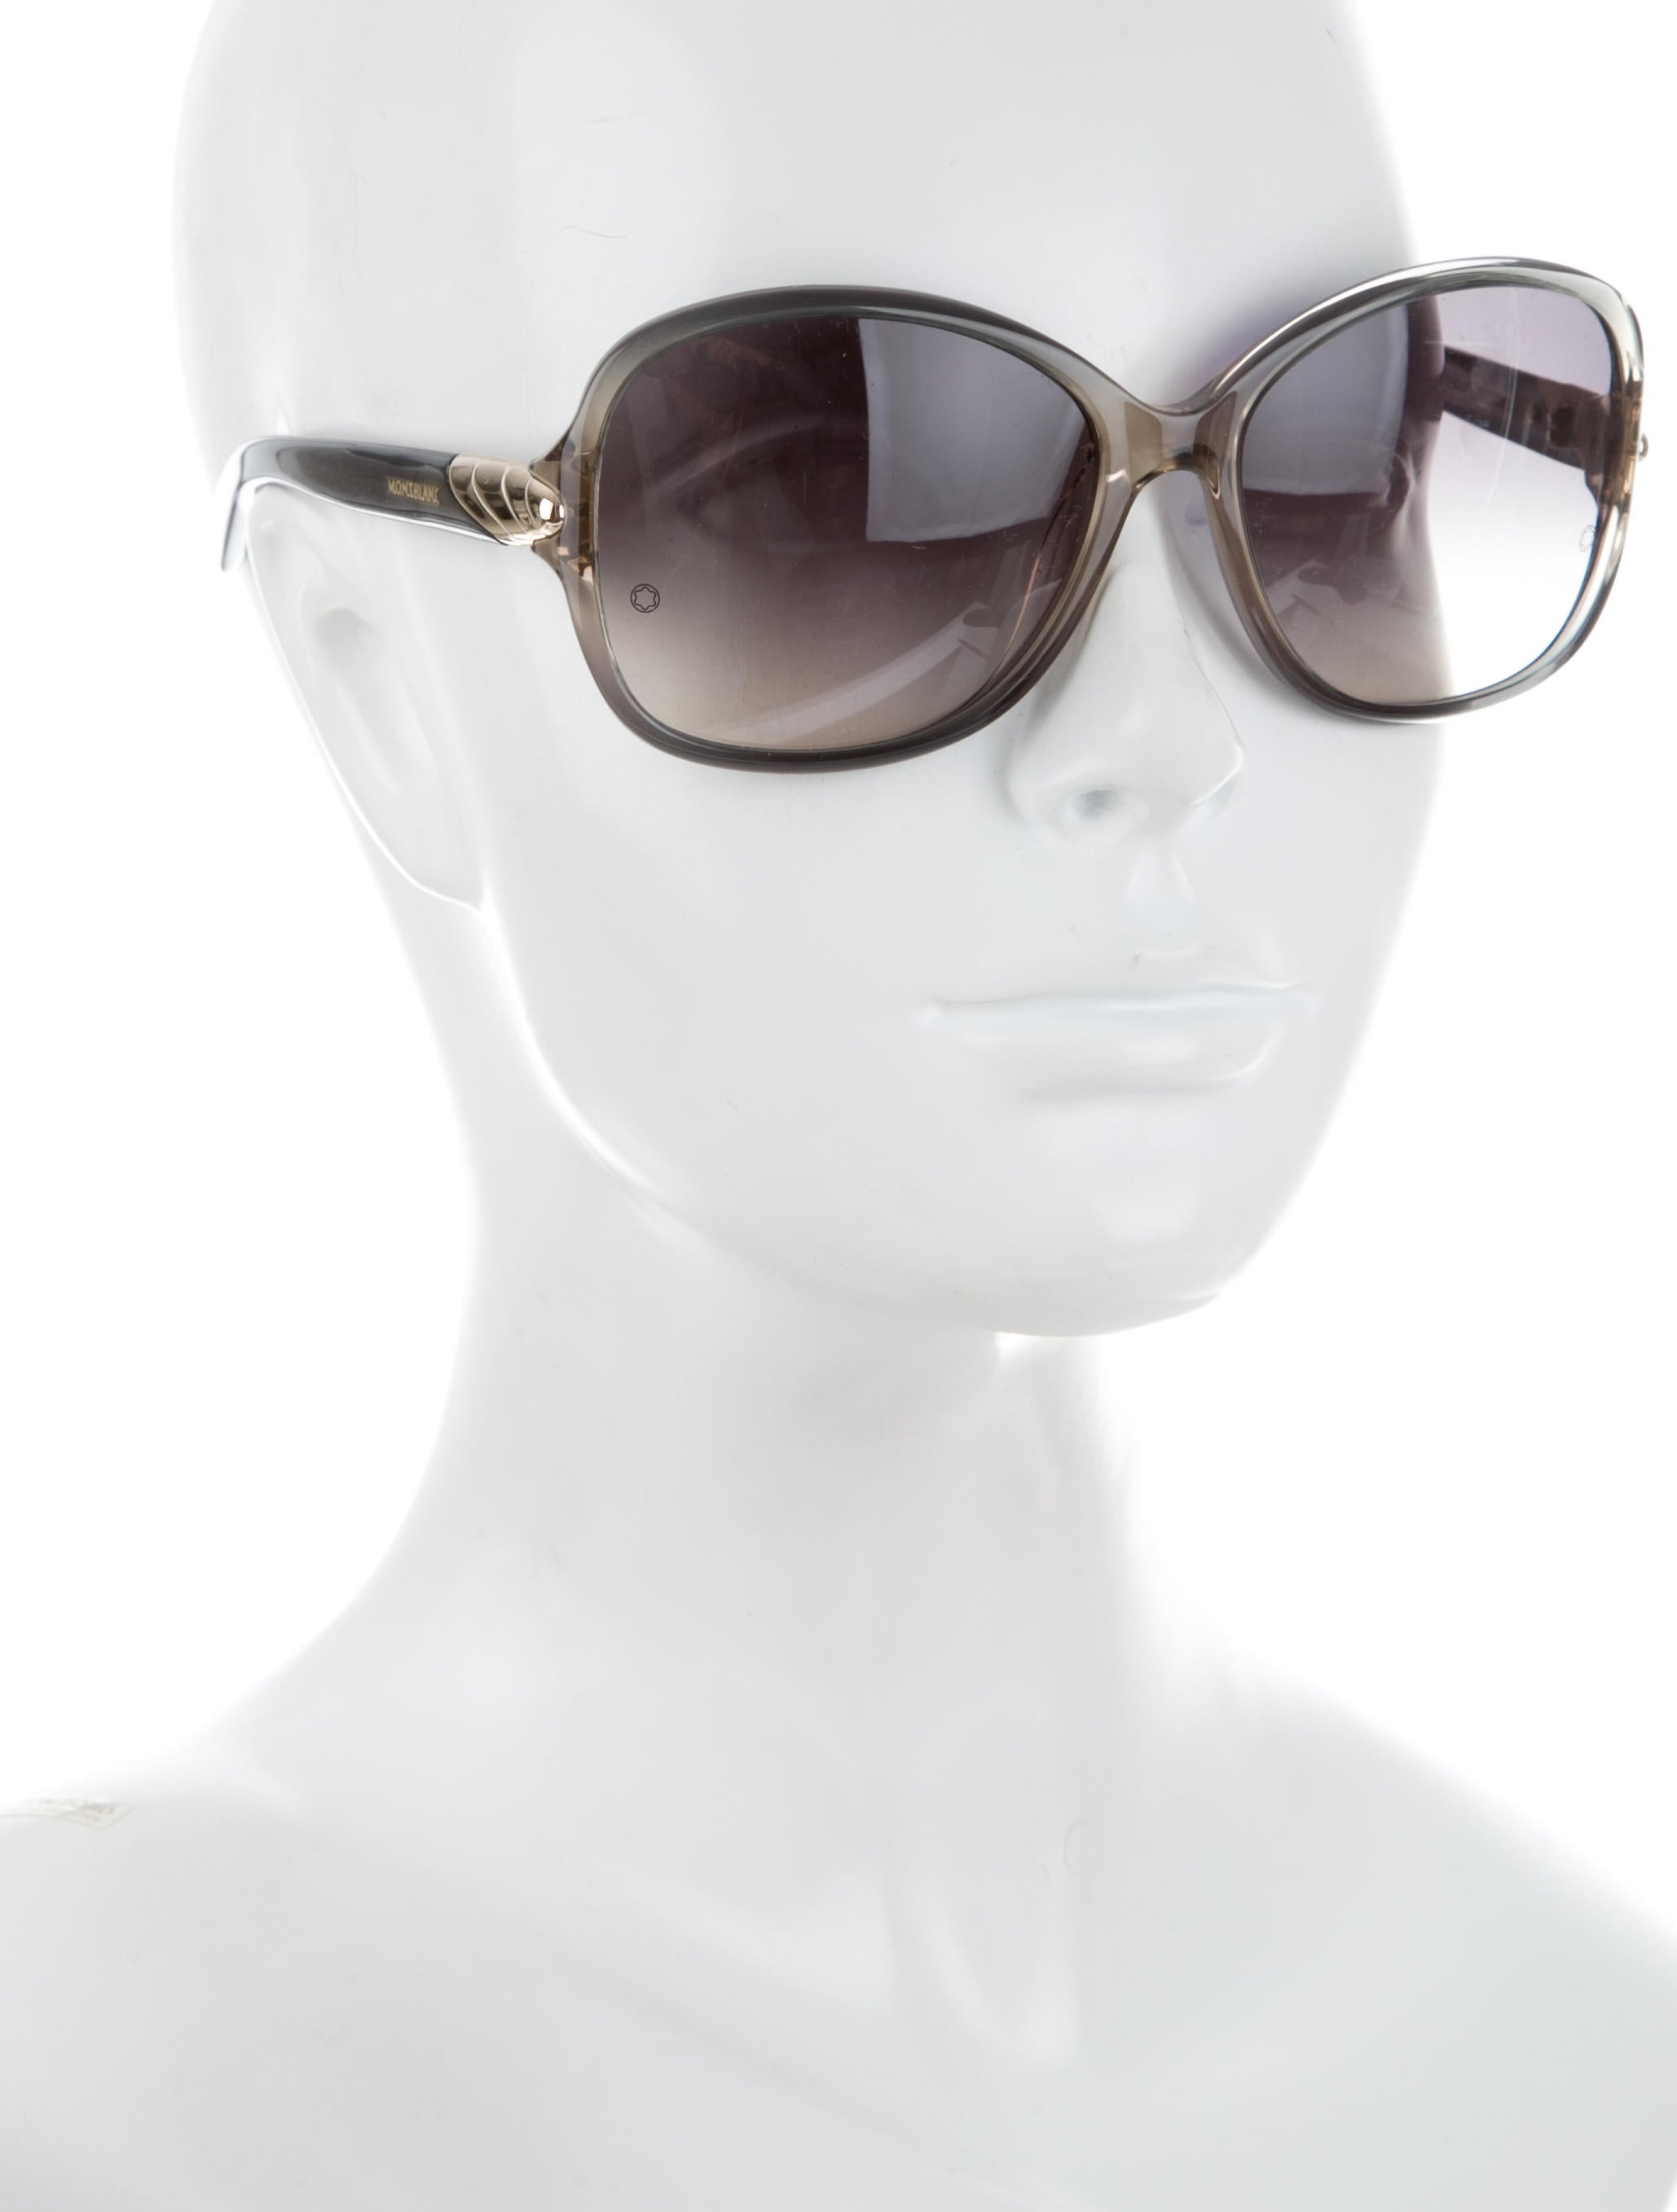 Montblanc Oversize Logo Sunglasses Accessories  : MBL207244enlarged from www.therealreal.com size 2058 x 2715 jpeg 129kB